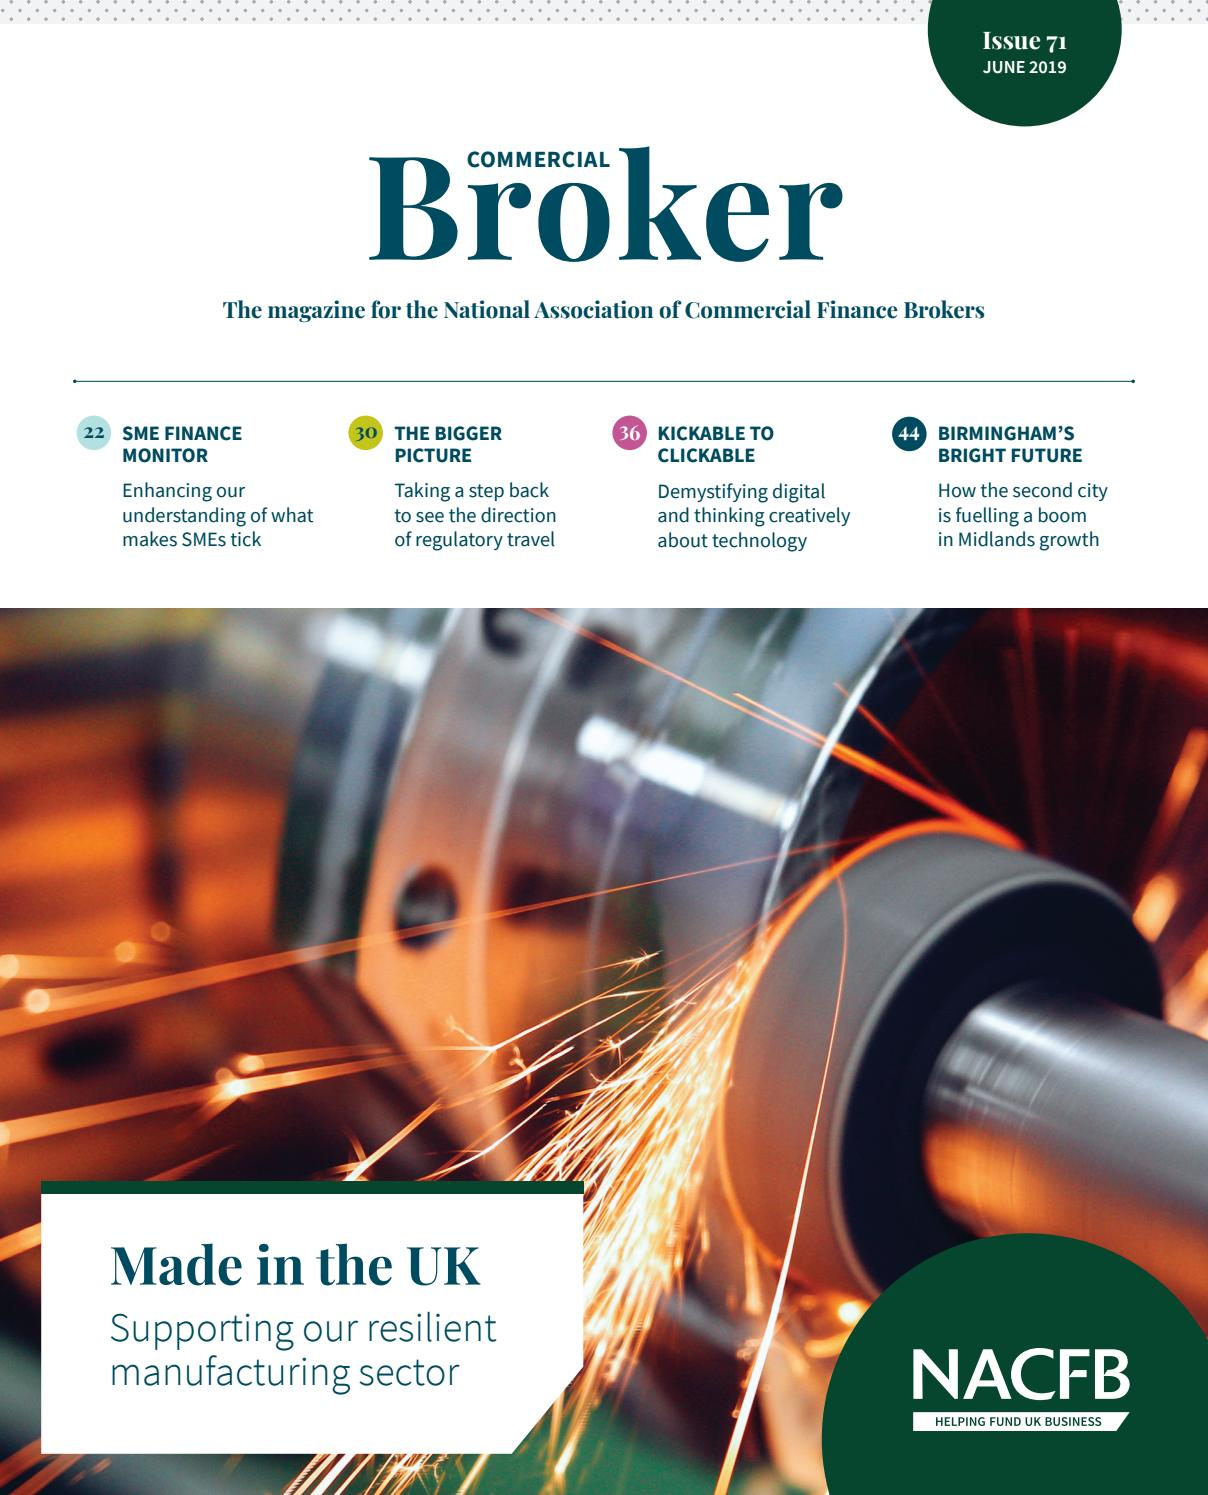 Commercial Broker (NACFB Magazine) June 2019 by NACFB - issuu